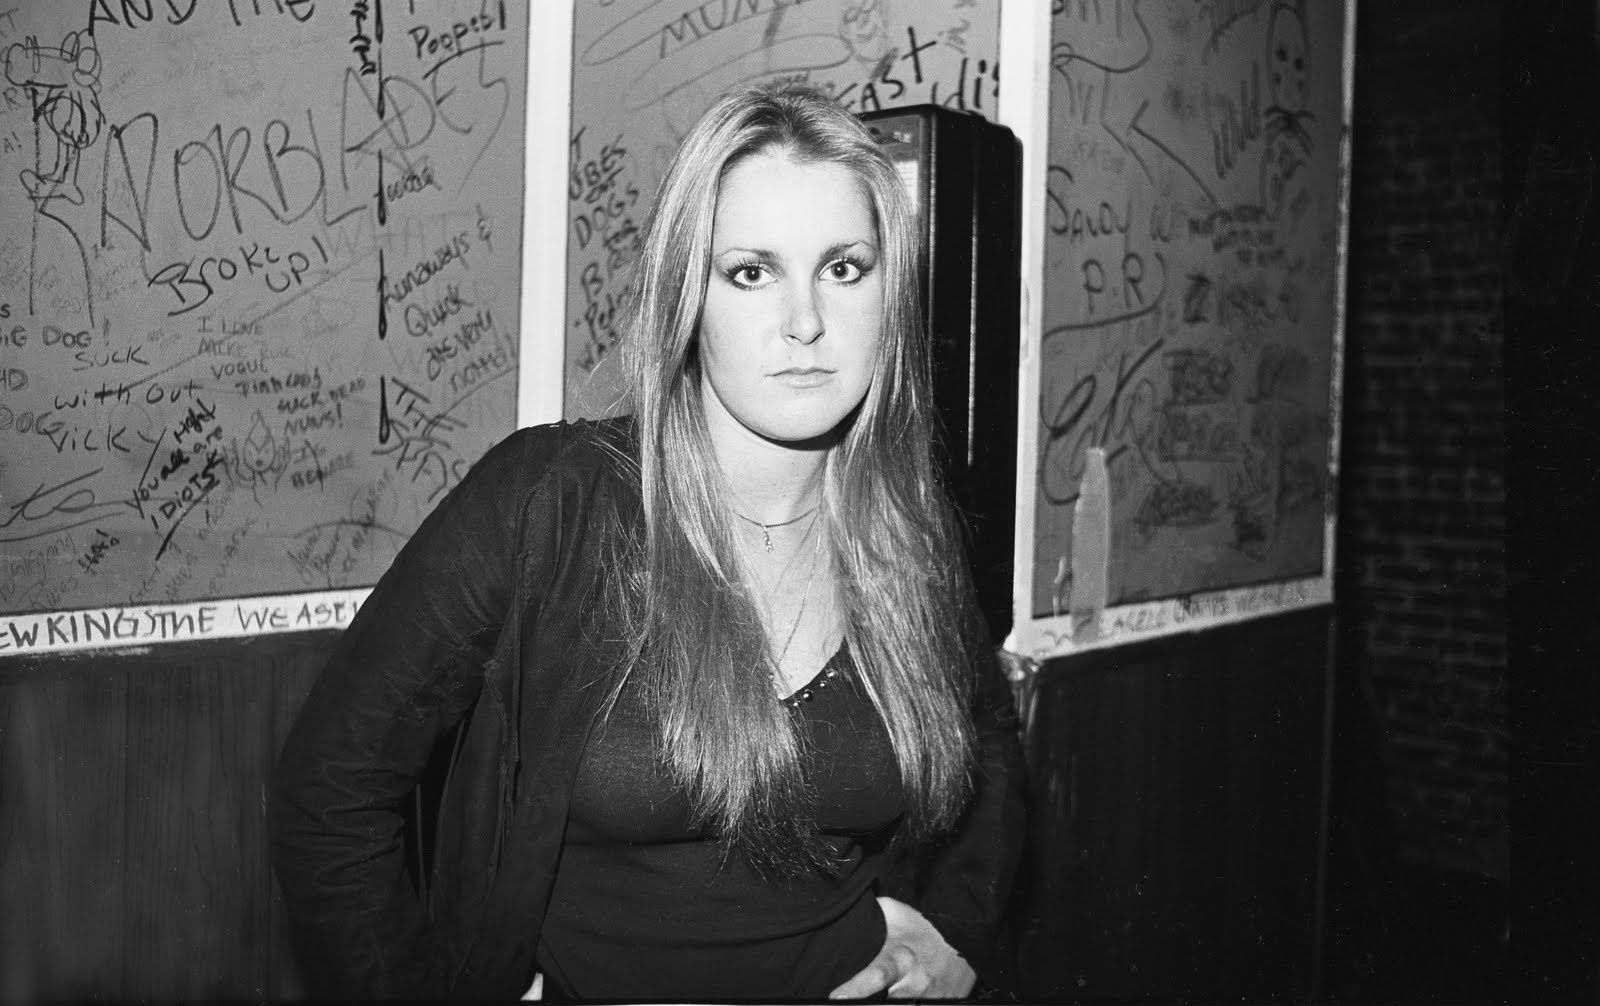 Lita Ford - The Runaways Back stage at the Whiskey, 1977-78